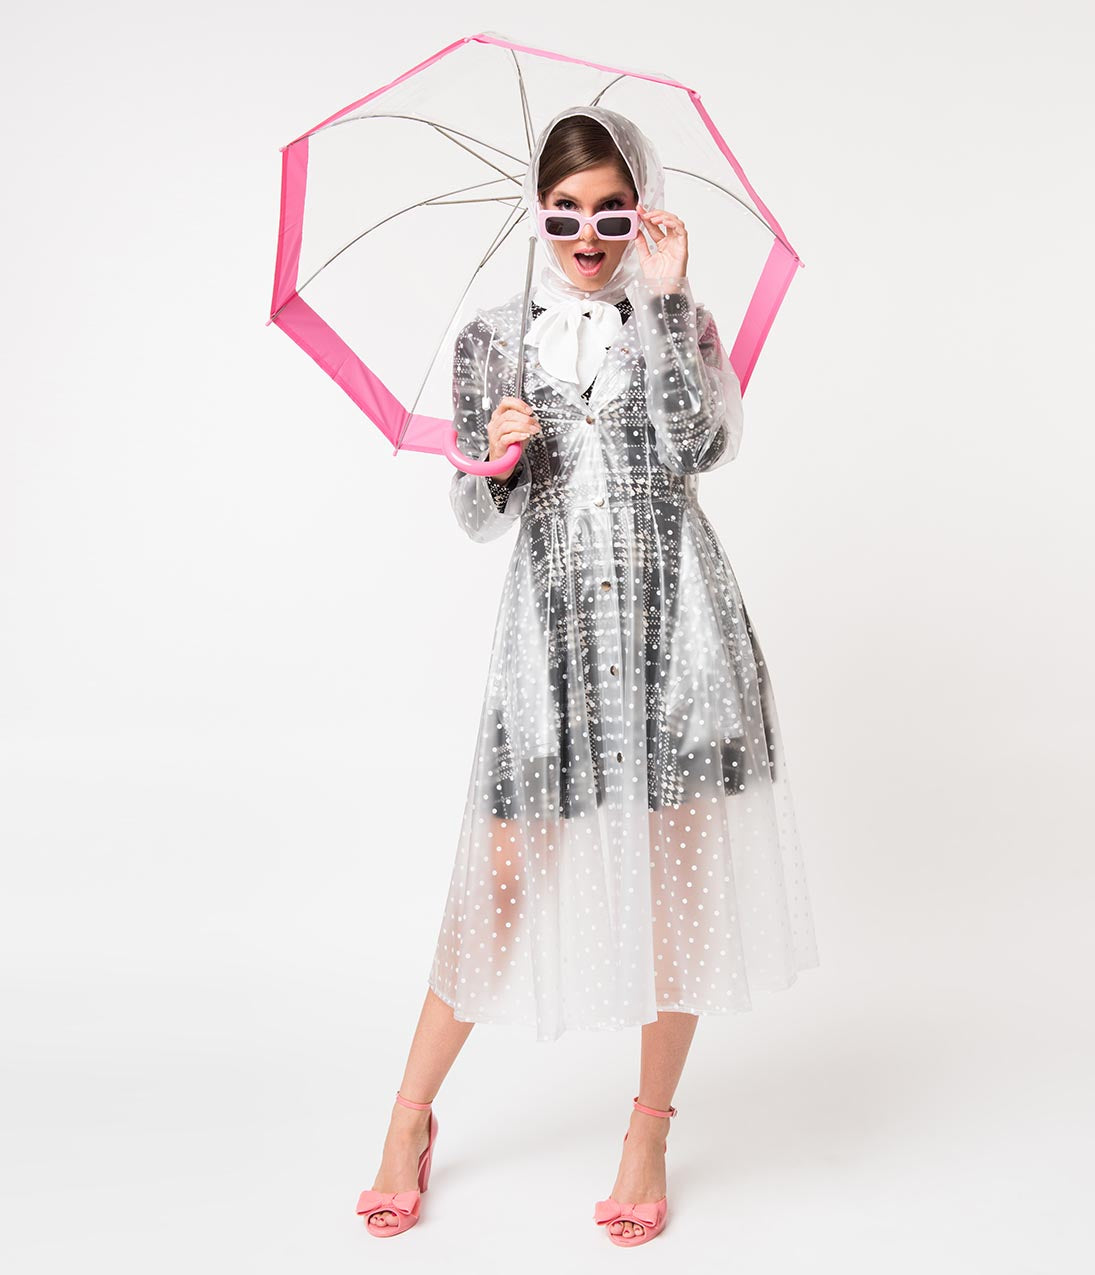 70s Jackets & Hippie Vests, Ponchos Vintage Style Clear  White Polka Dot Long Sleeve Ruby Raincoat $74.00 AT vintagedancer.com